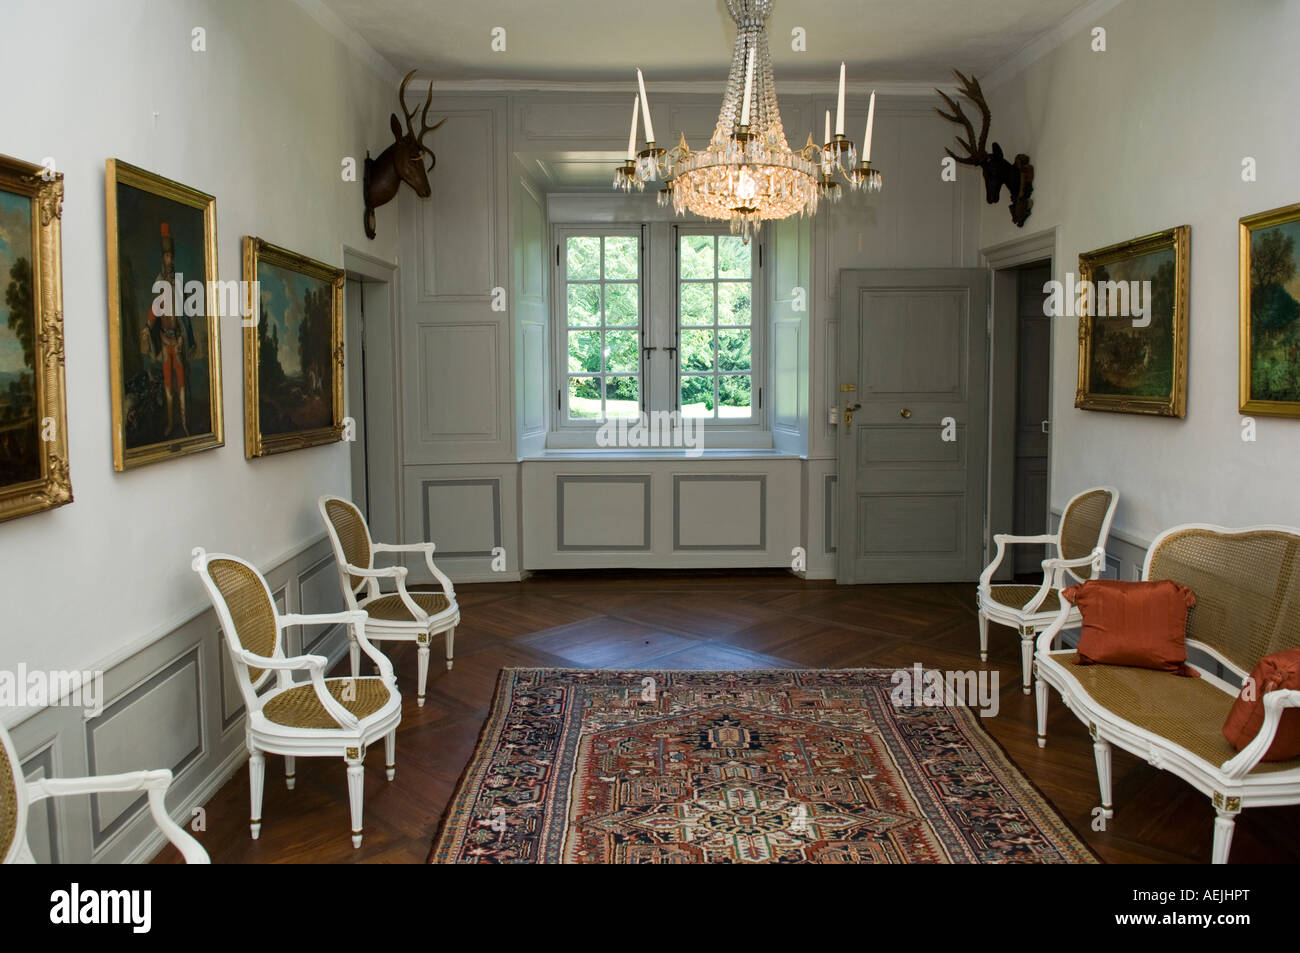 historical hunting lodge kranichstein darmstadt hesse germany stock photo royalty free image. Black Bedroom Furniture Sets. Home Design Ideas